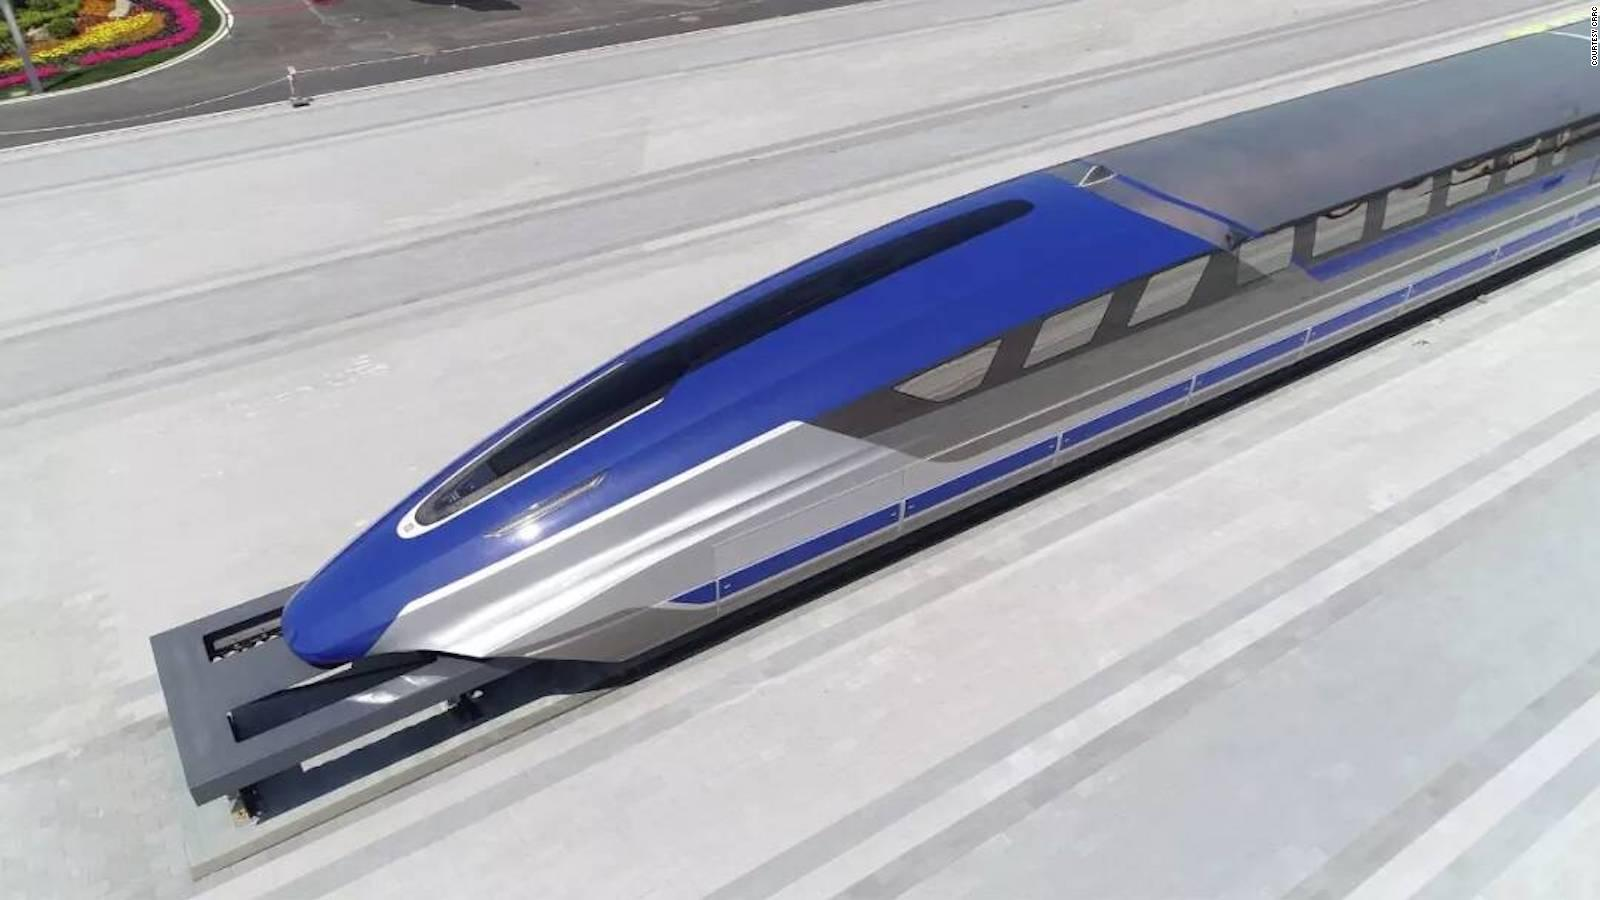 China introduced a train capable of accelerating to 1000 km h